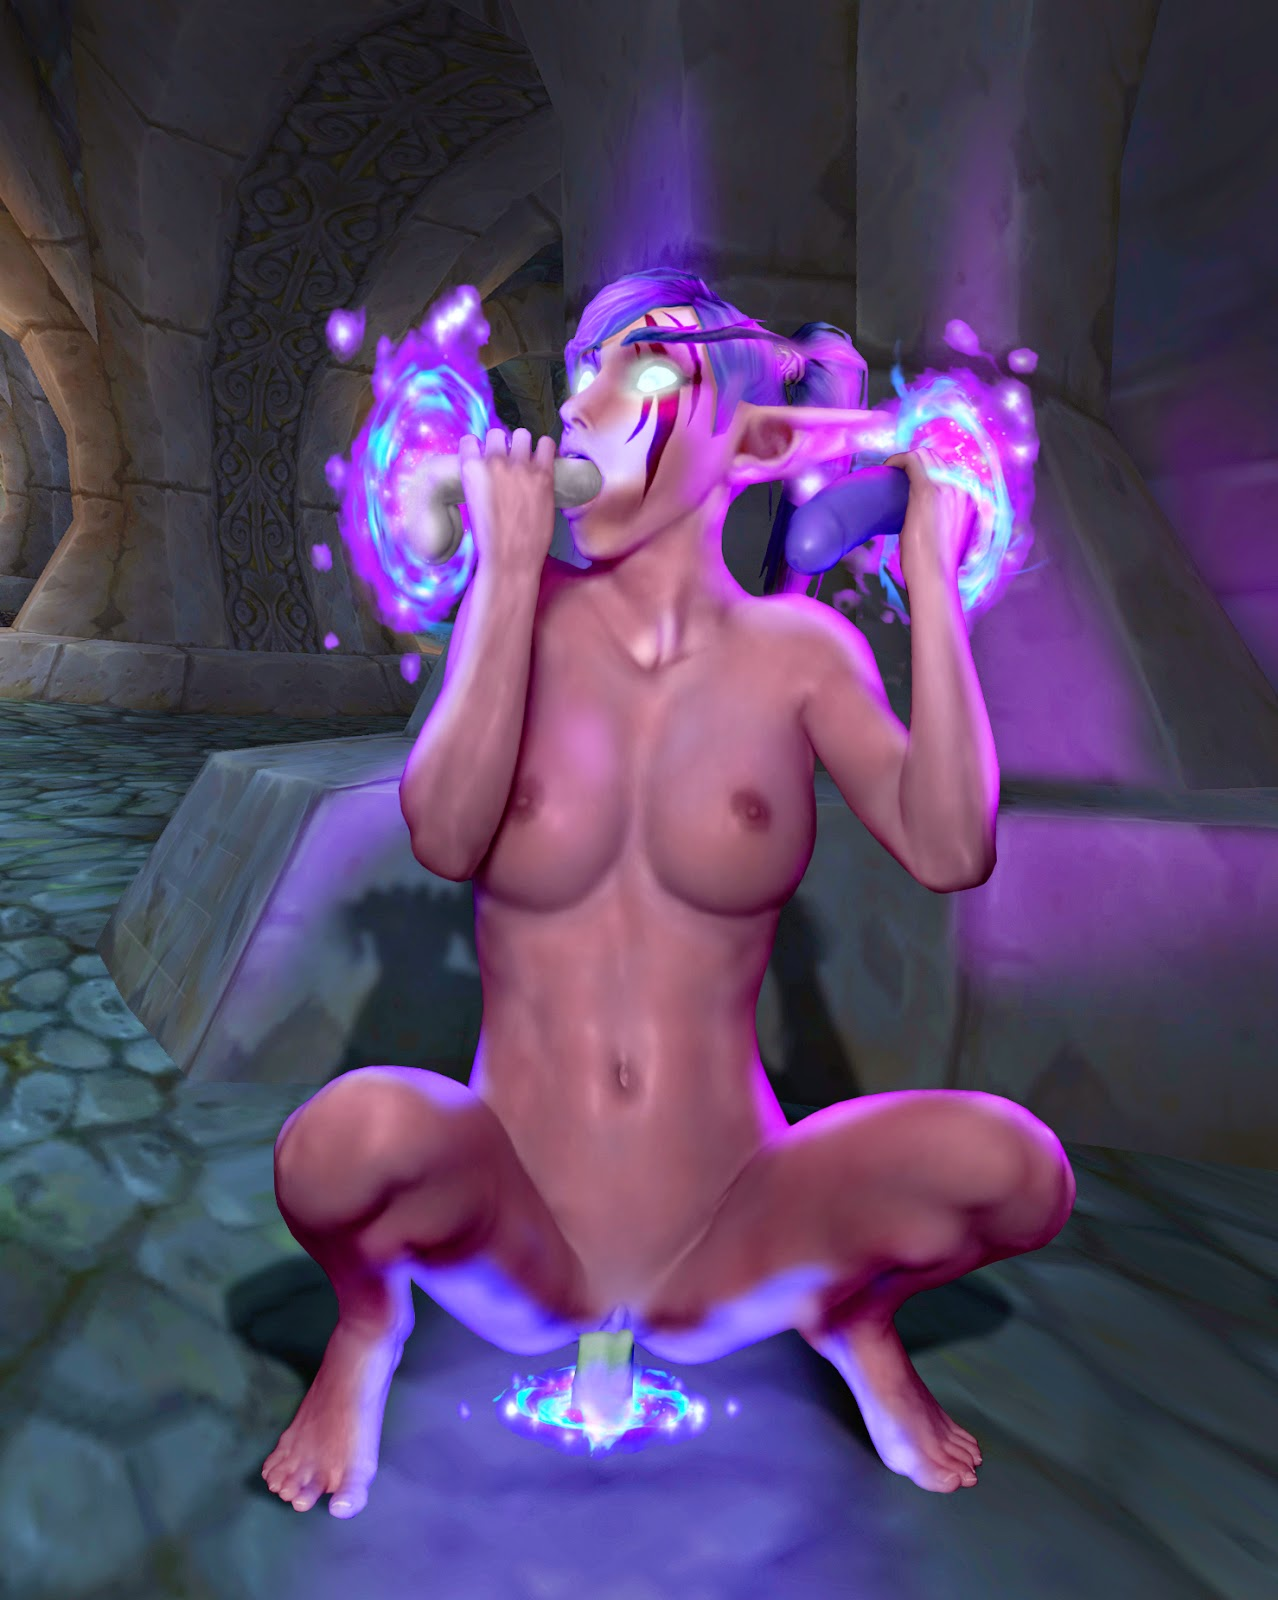 World of warcraft nightelf porn pics sexy scenes